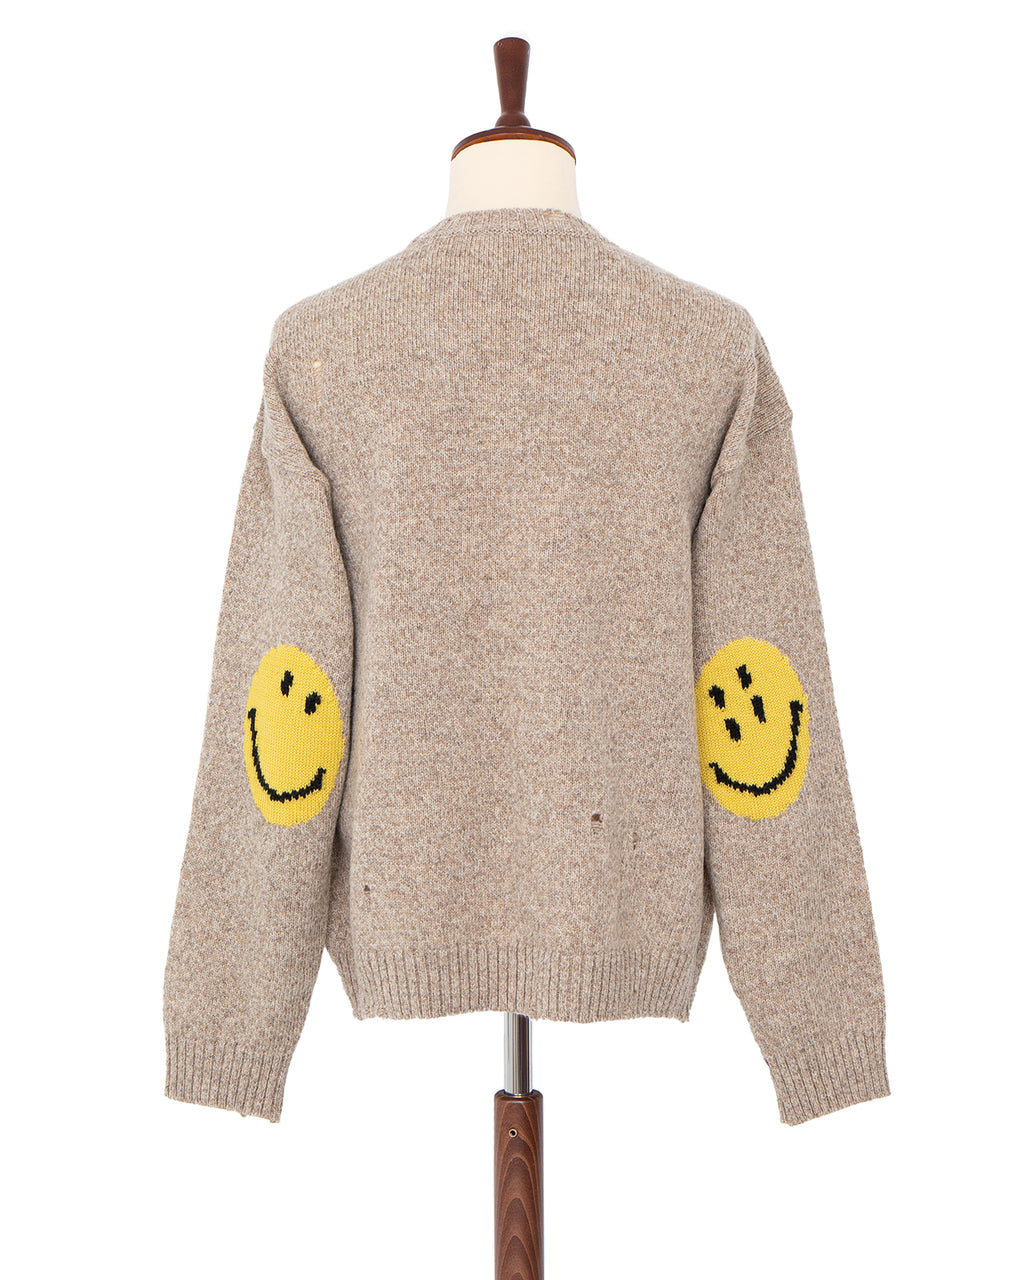 Kapital 7G Wool Smile Crew Sweater, Beige